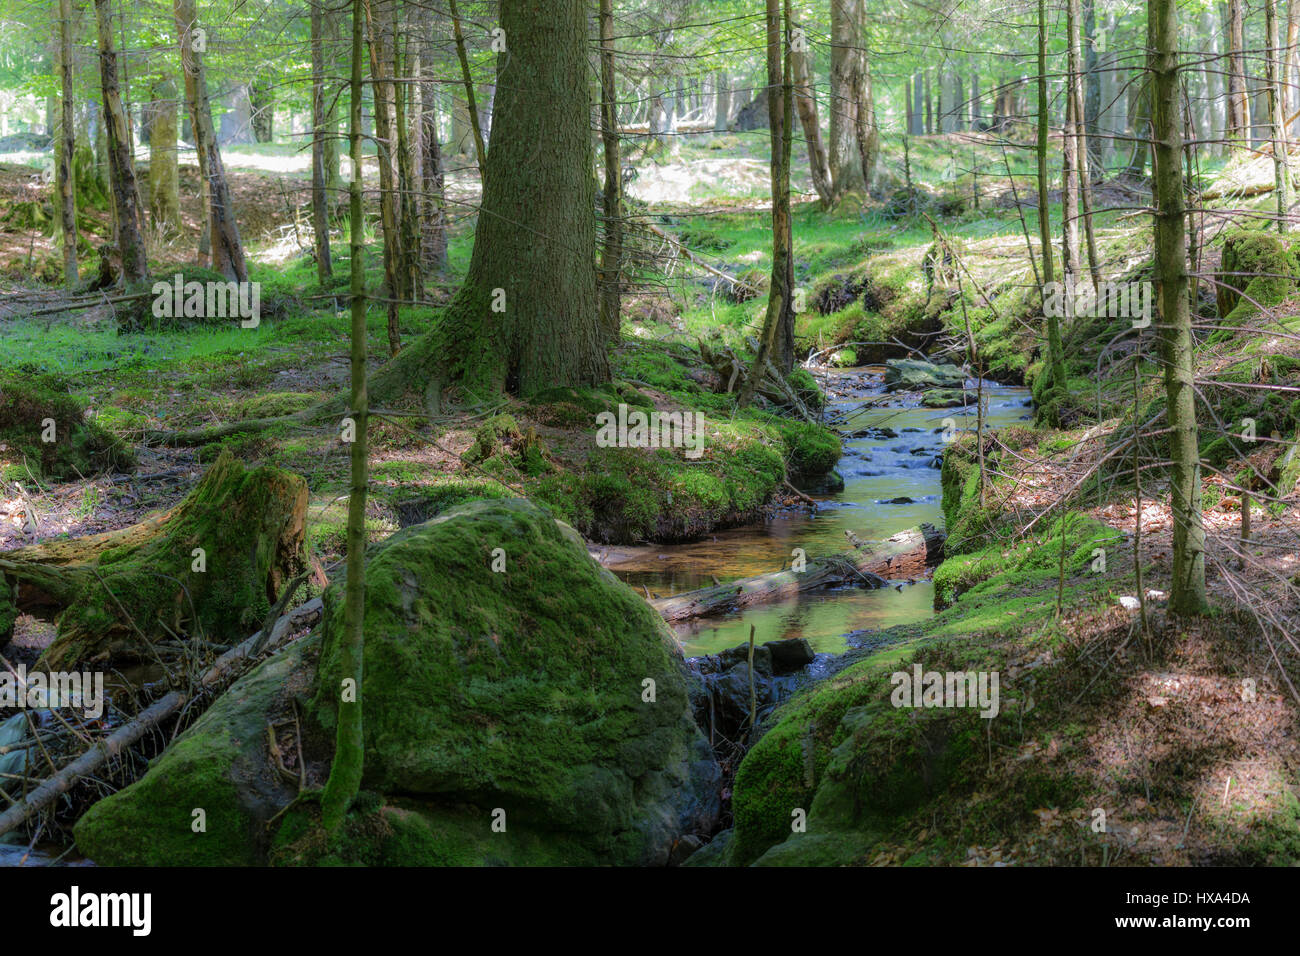 Idyllic Bavarian Forest - Stock Image